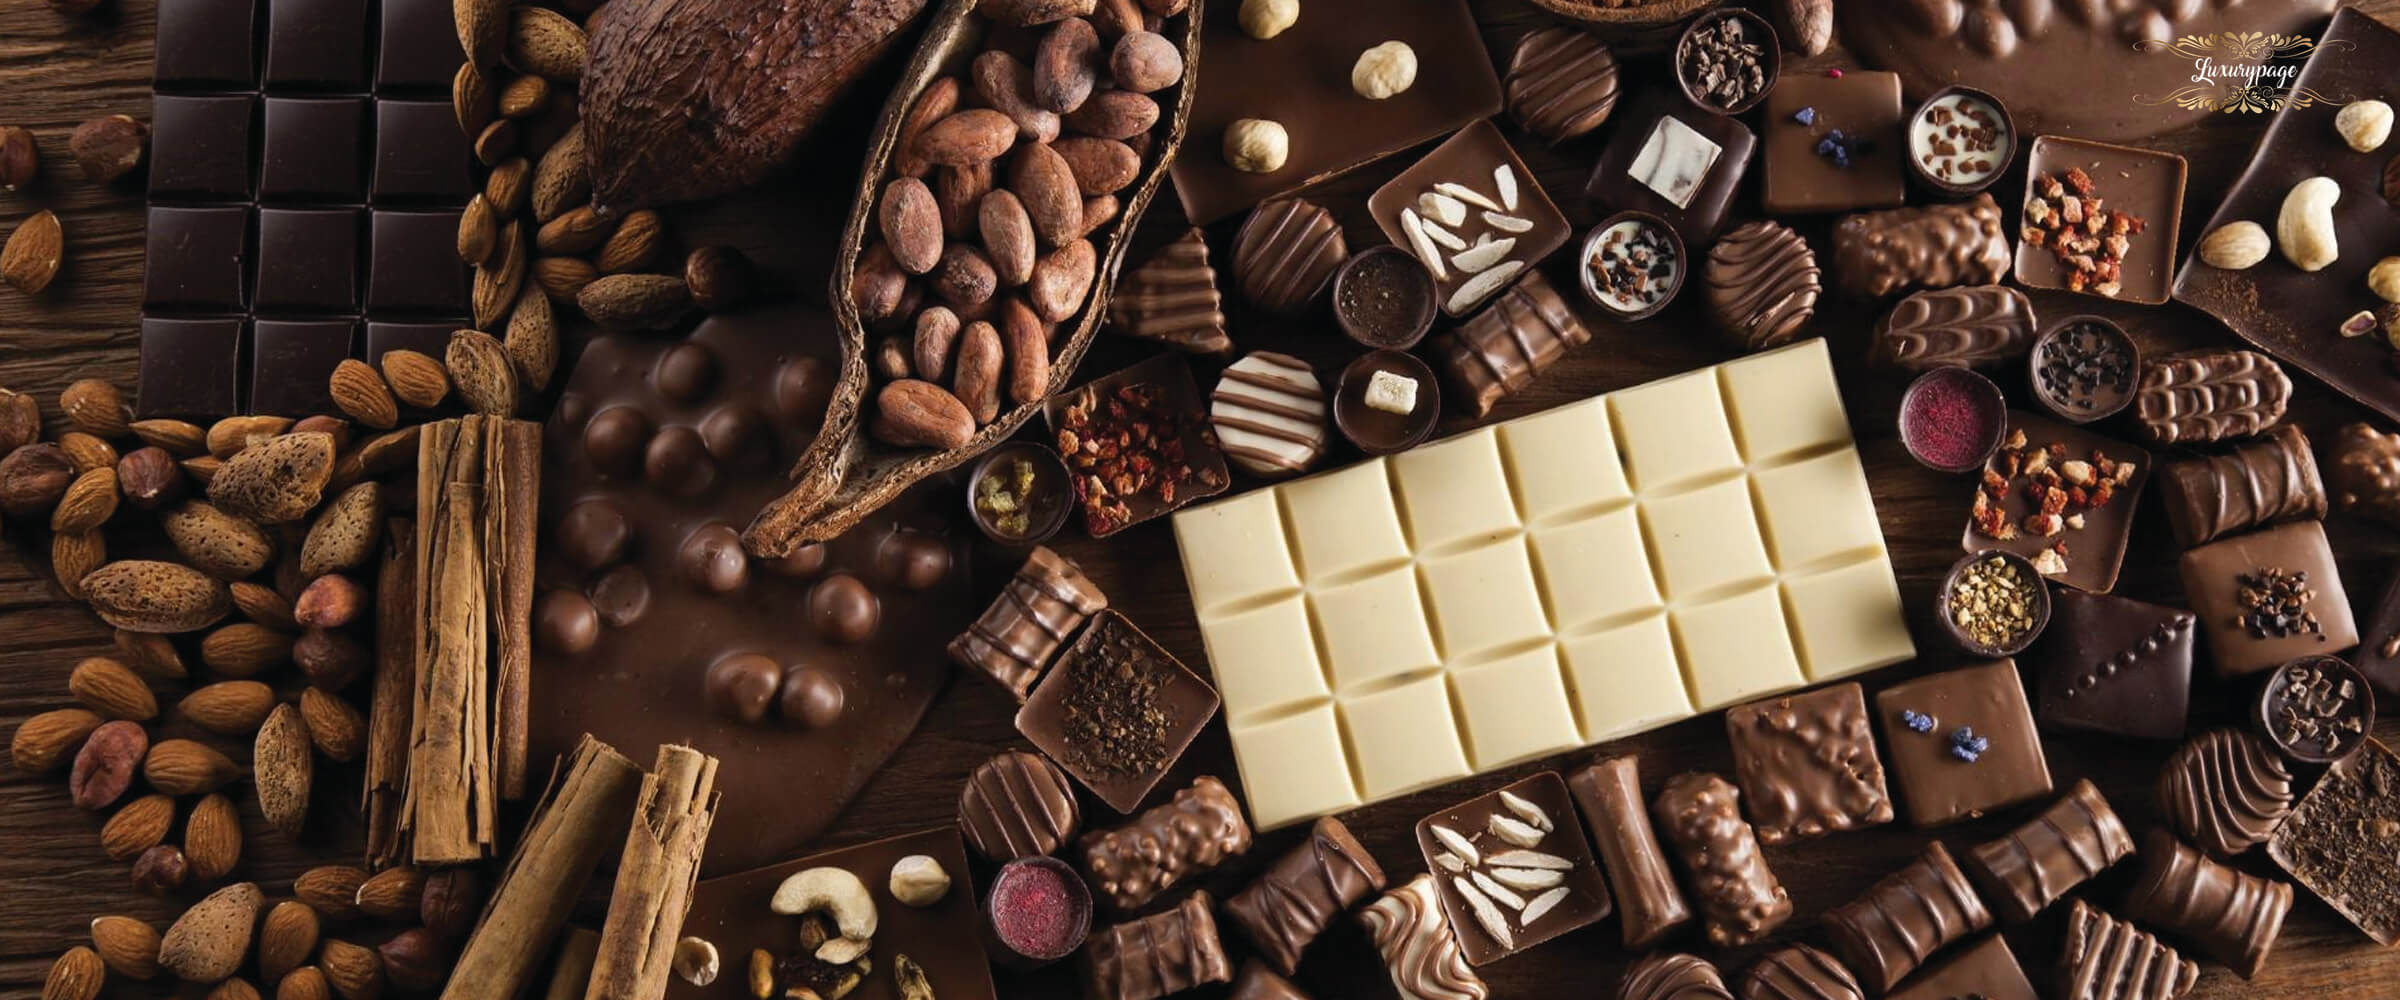 Celebrate December Festival with these 10 Luxury Chocolate Brands